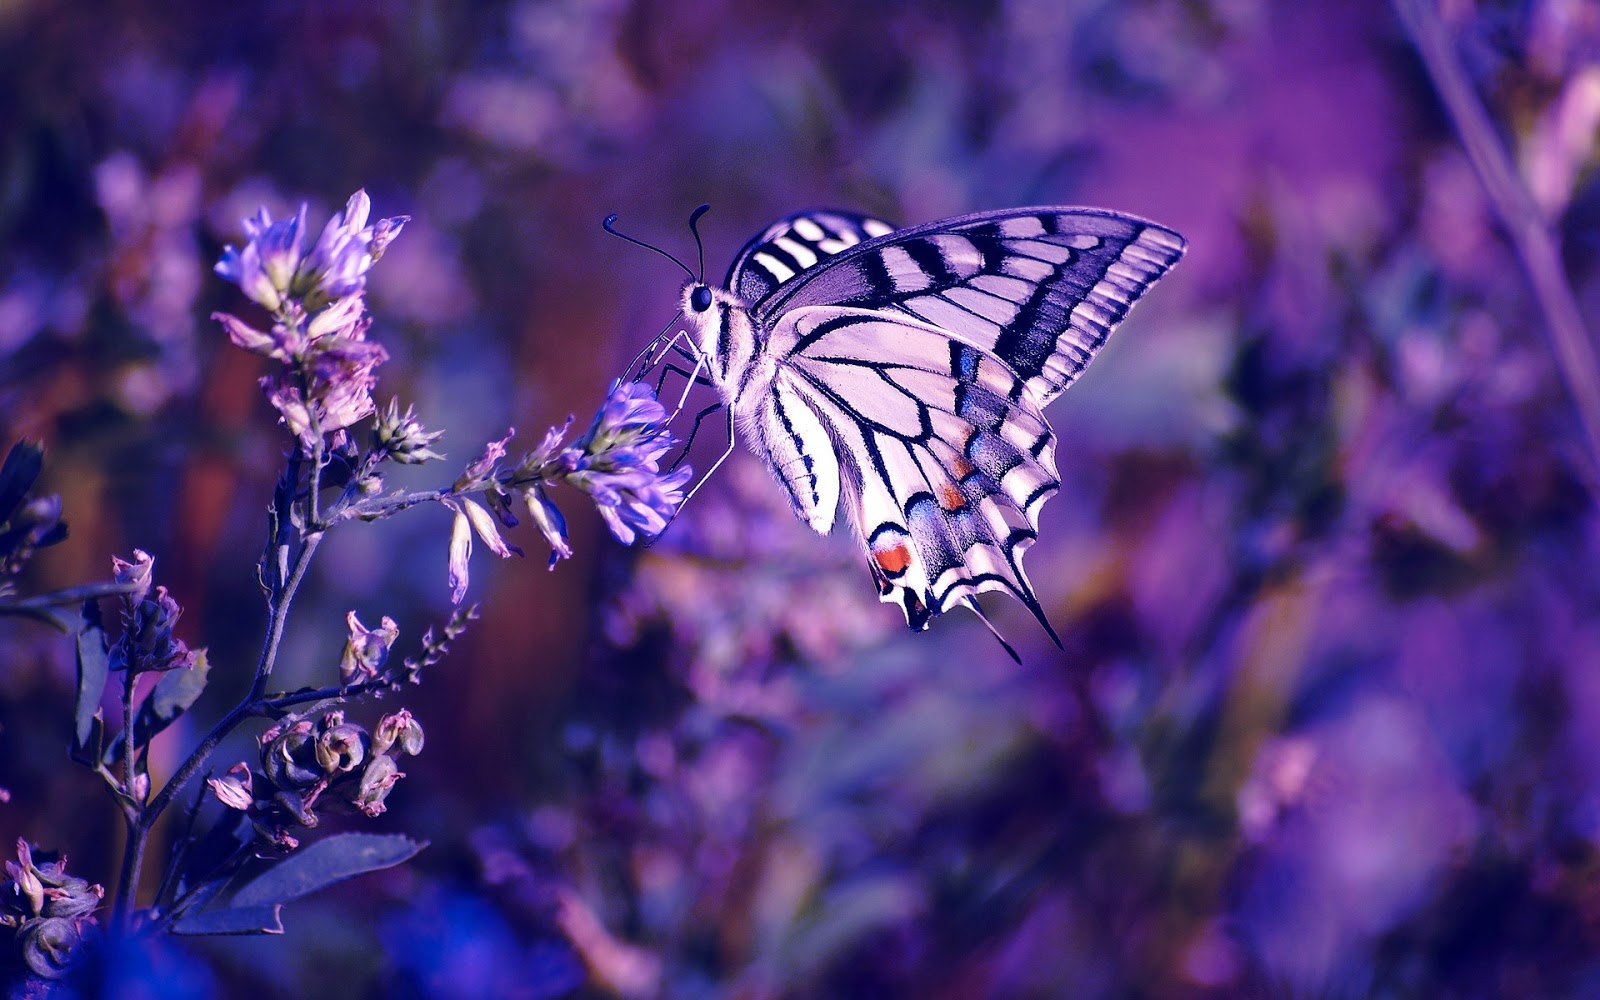 50 Beautiful Butterfly Wallpapers Free Download In Hd And 4k